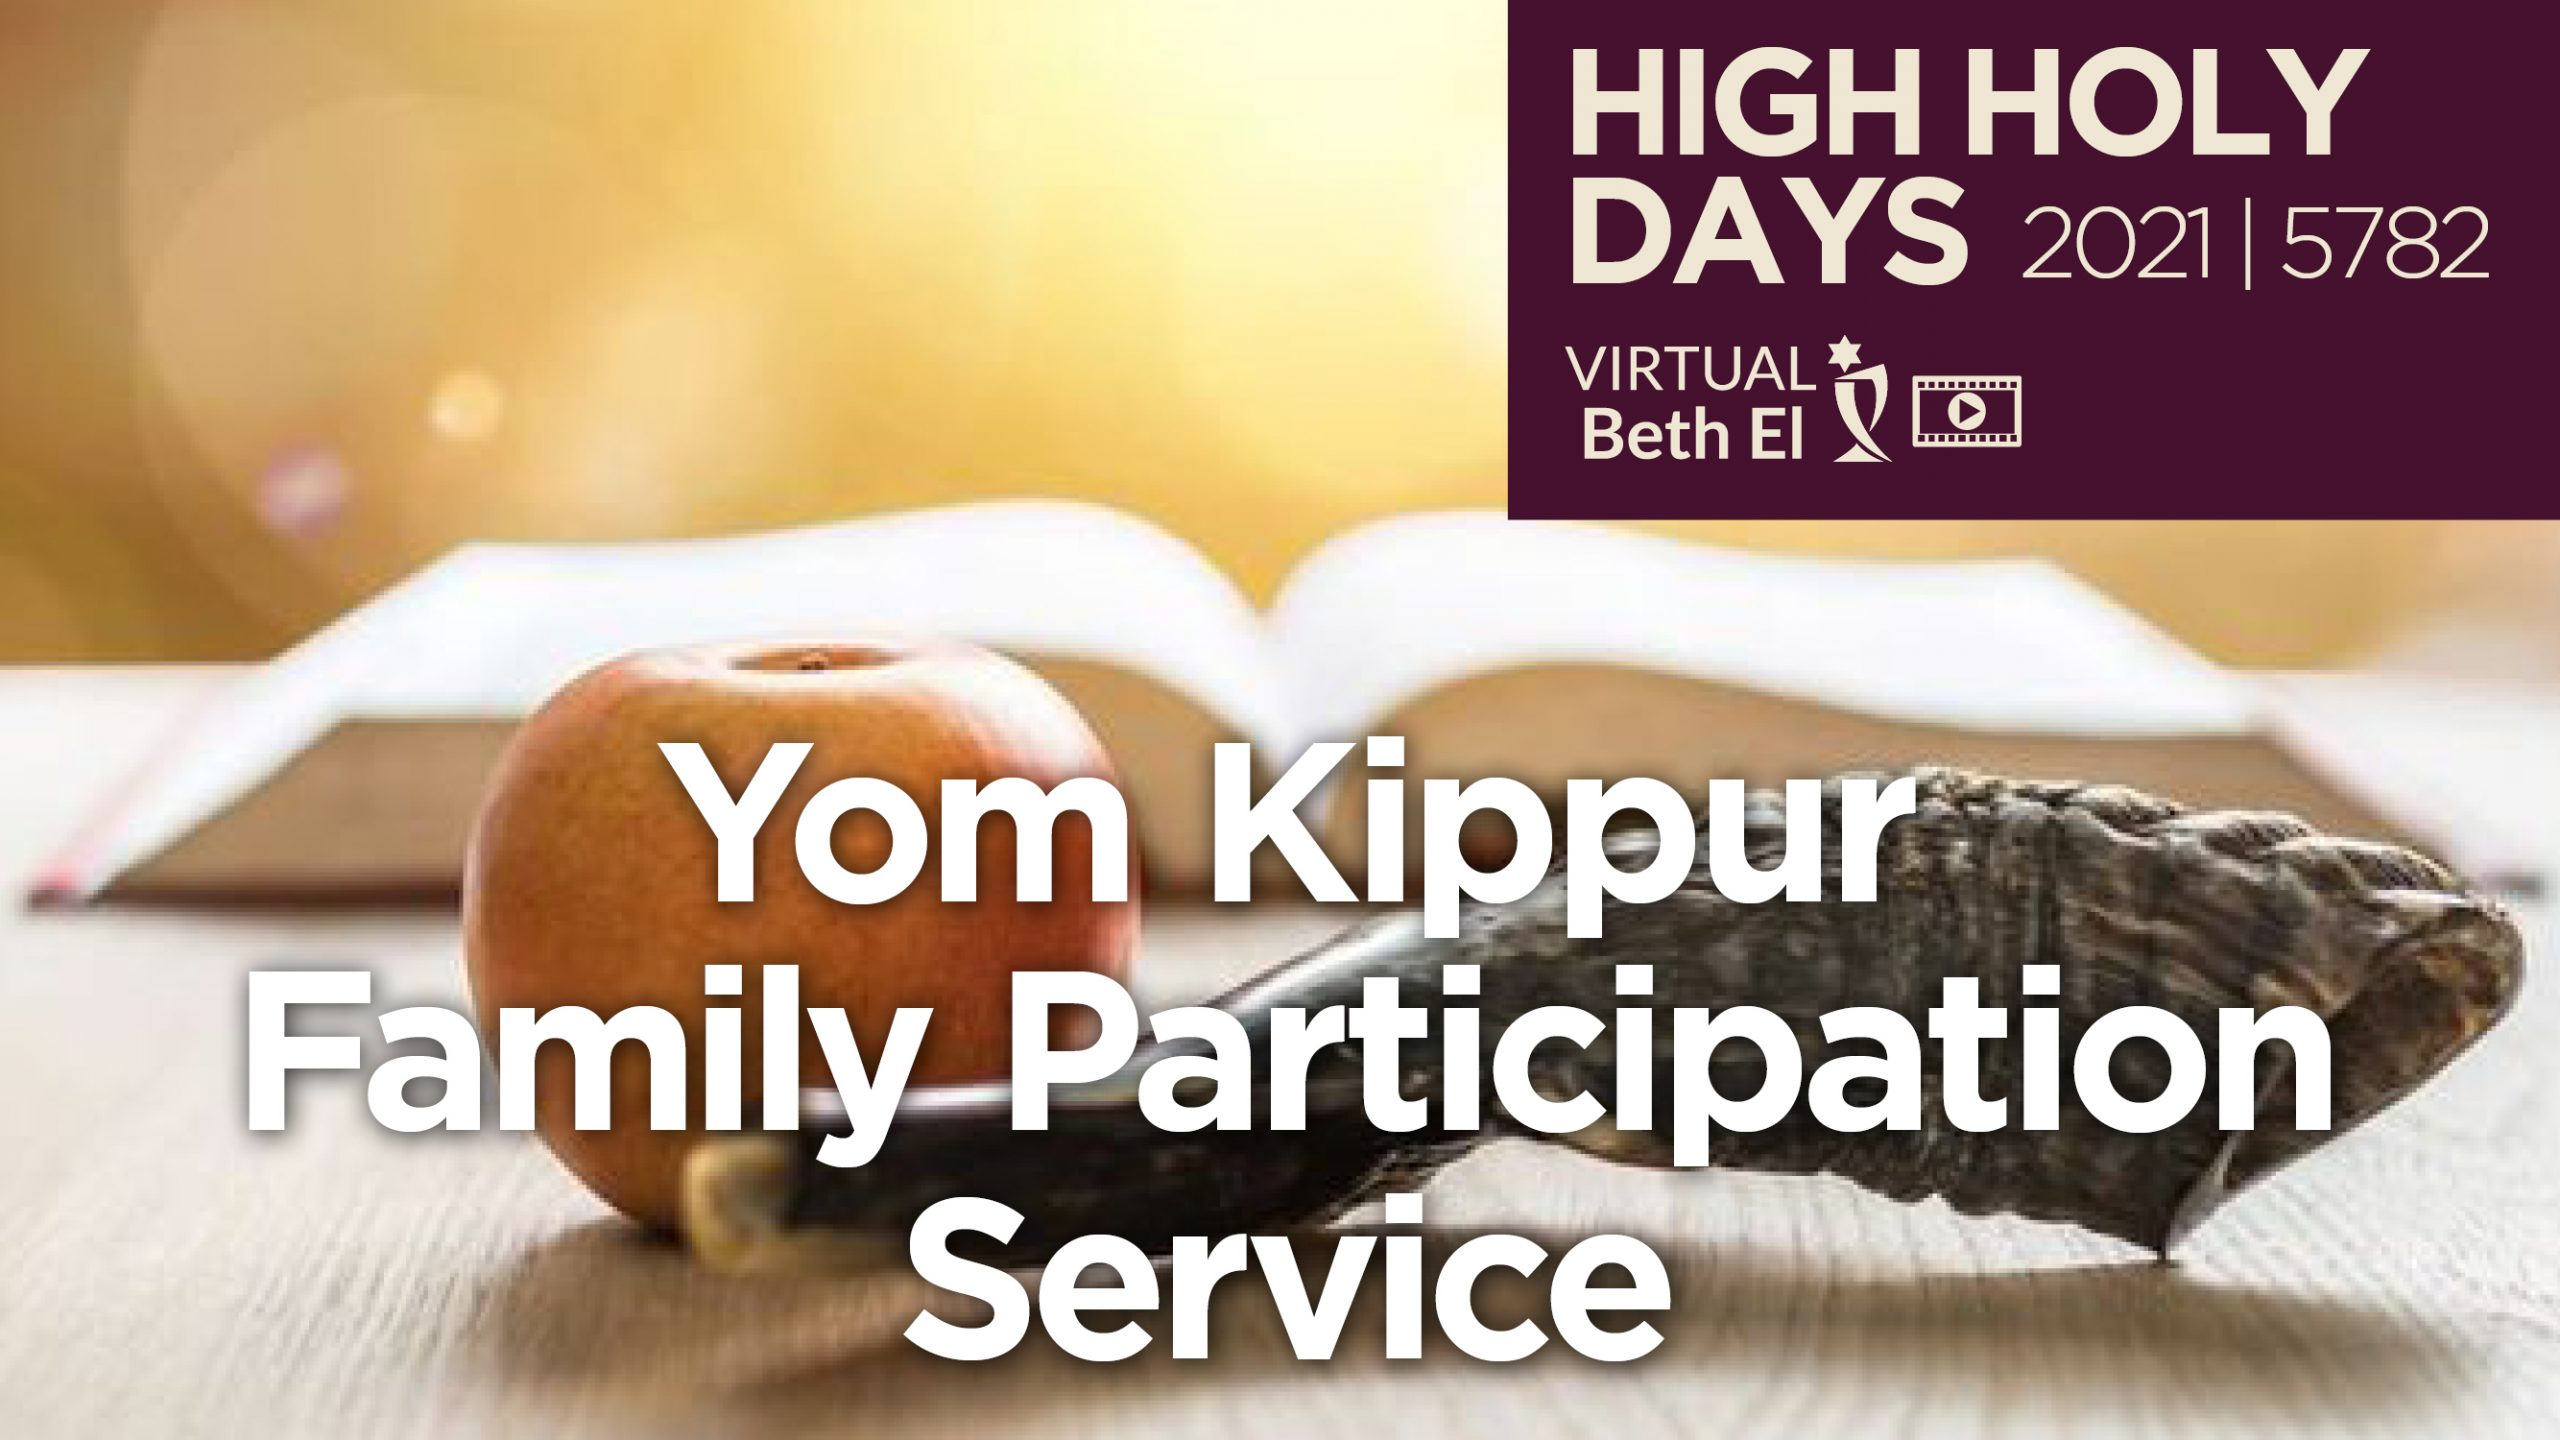 Yom Kippur Family Participation Services Announcement Graphic for 2021 5782